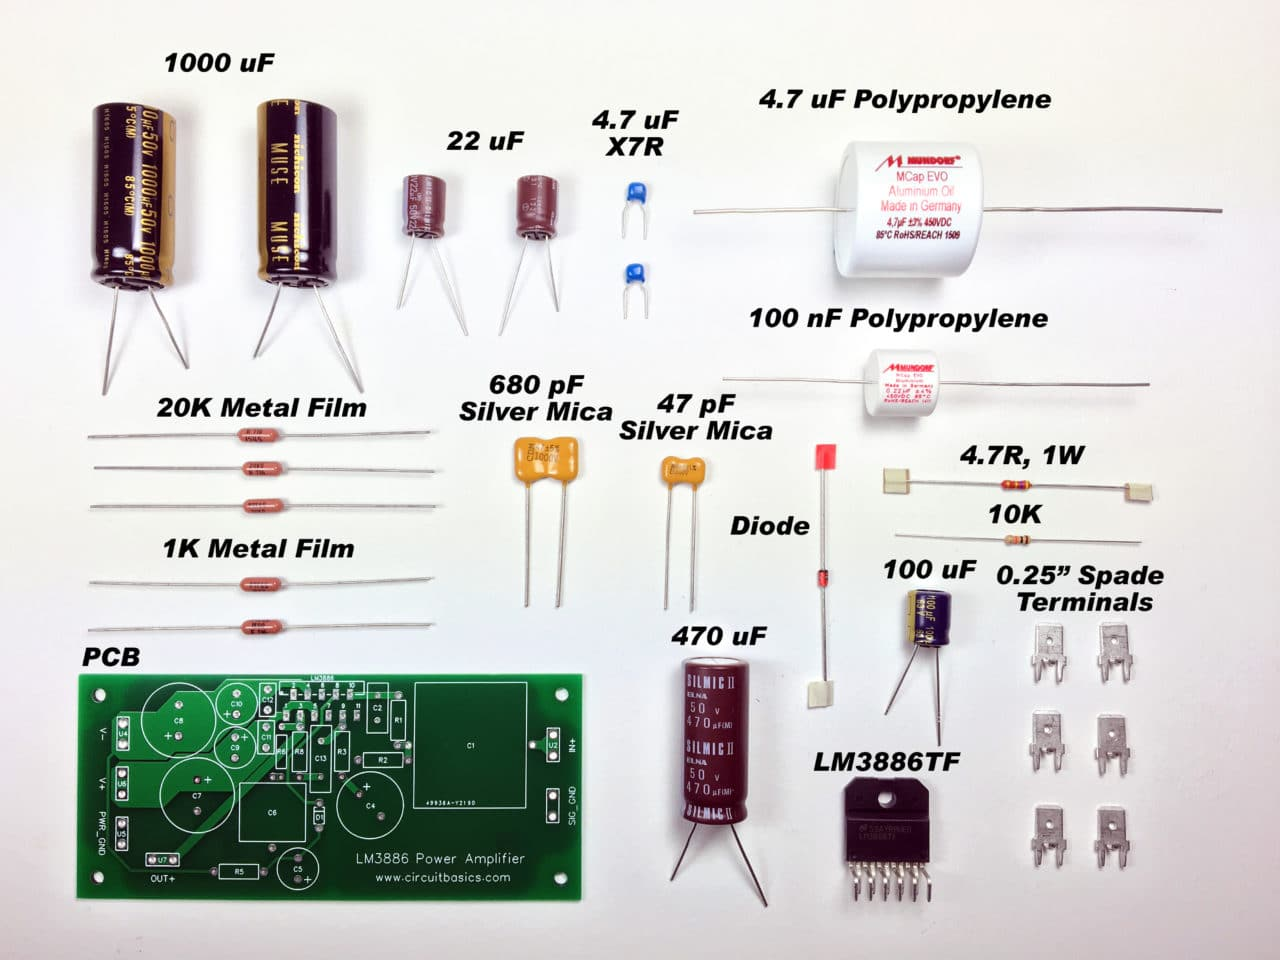 A Complete Guide To Design And Build Hi Fi Lm3886 Amplifier Transistor Power Lifier Circuit Diagram On 50 Amp Wiring The Total Cost Came About 118 For Both Channels Not Including Chassis Supply Parts You Can It Lot Less With Cheaper